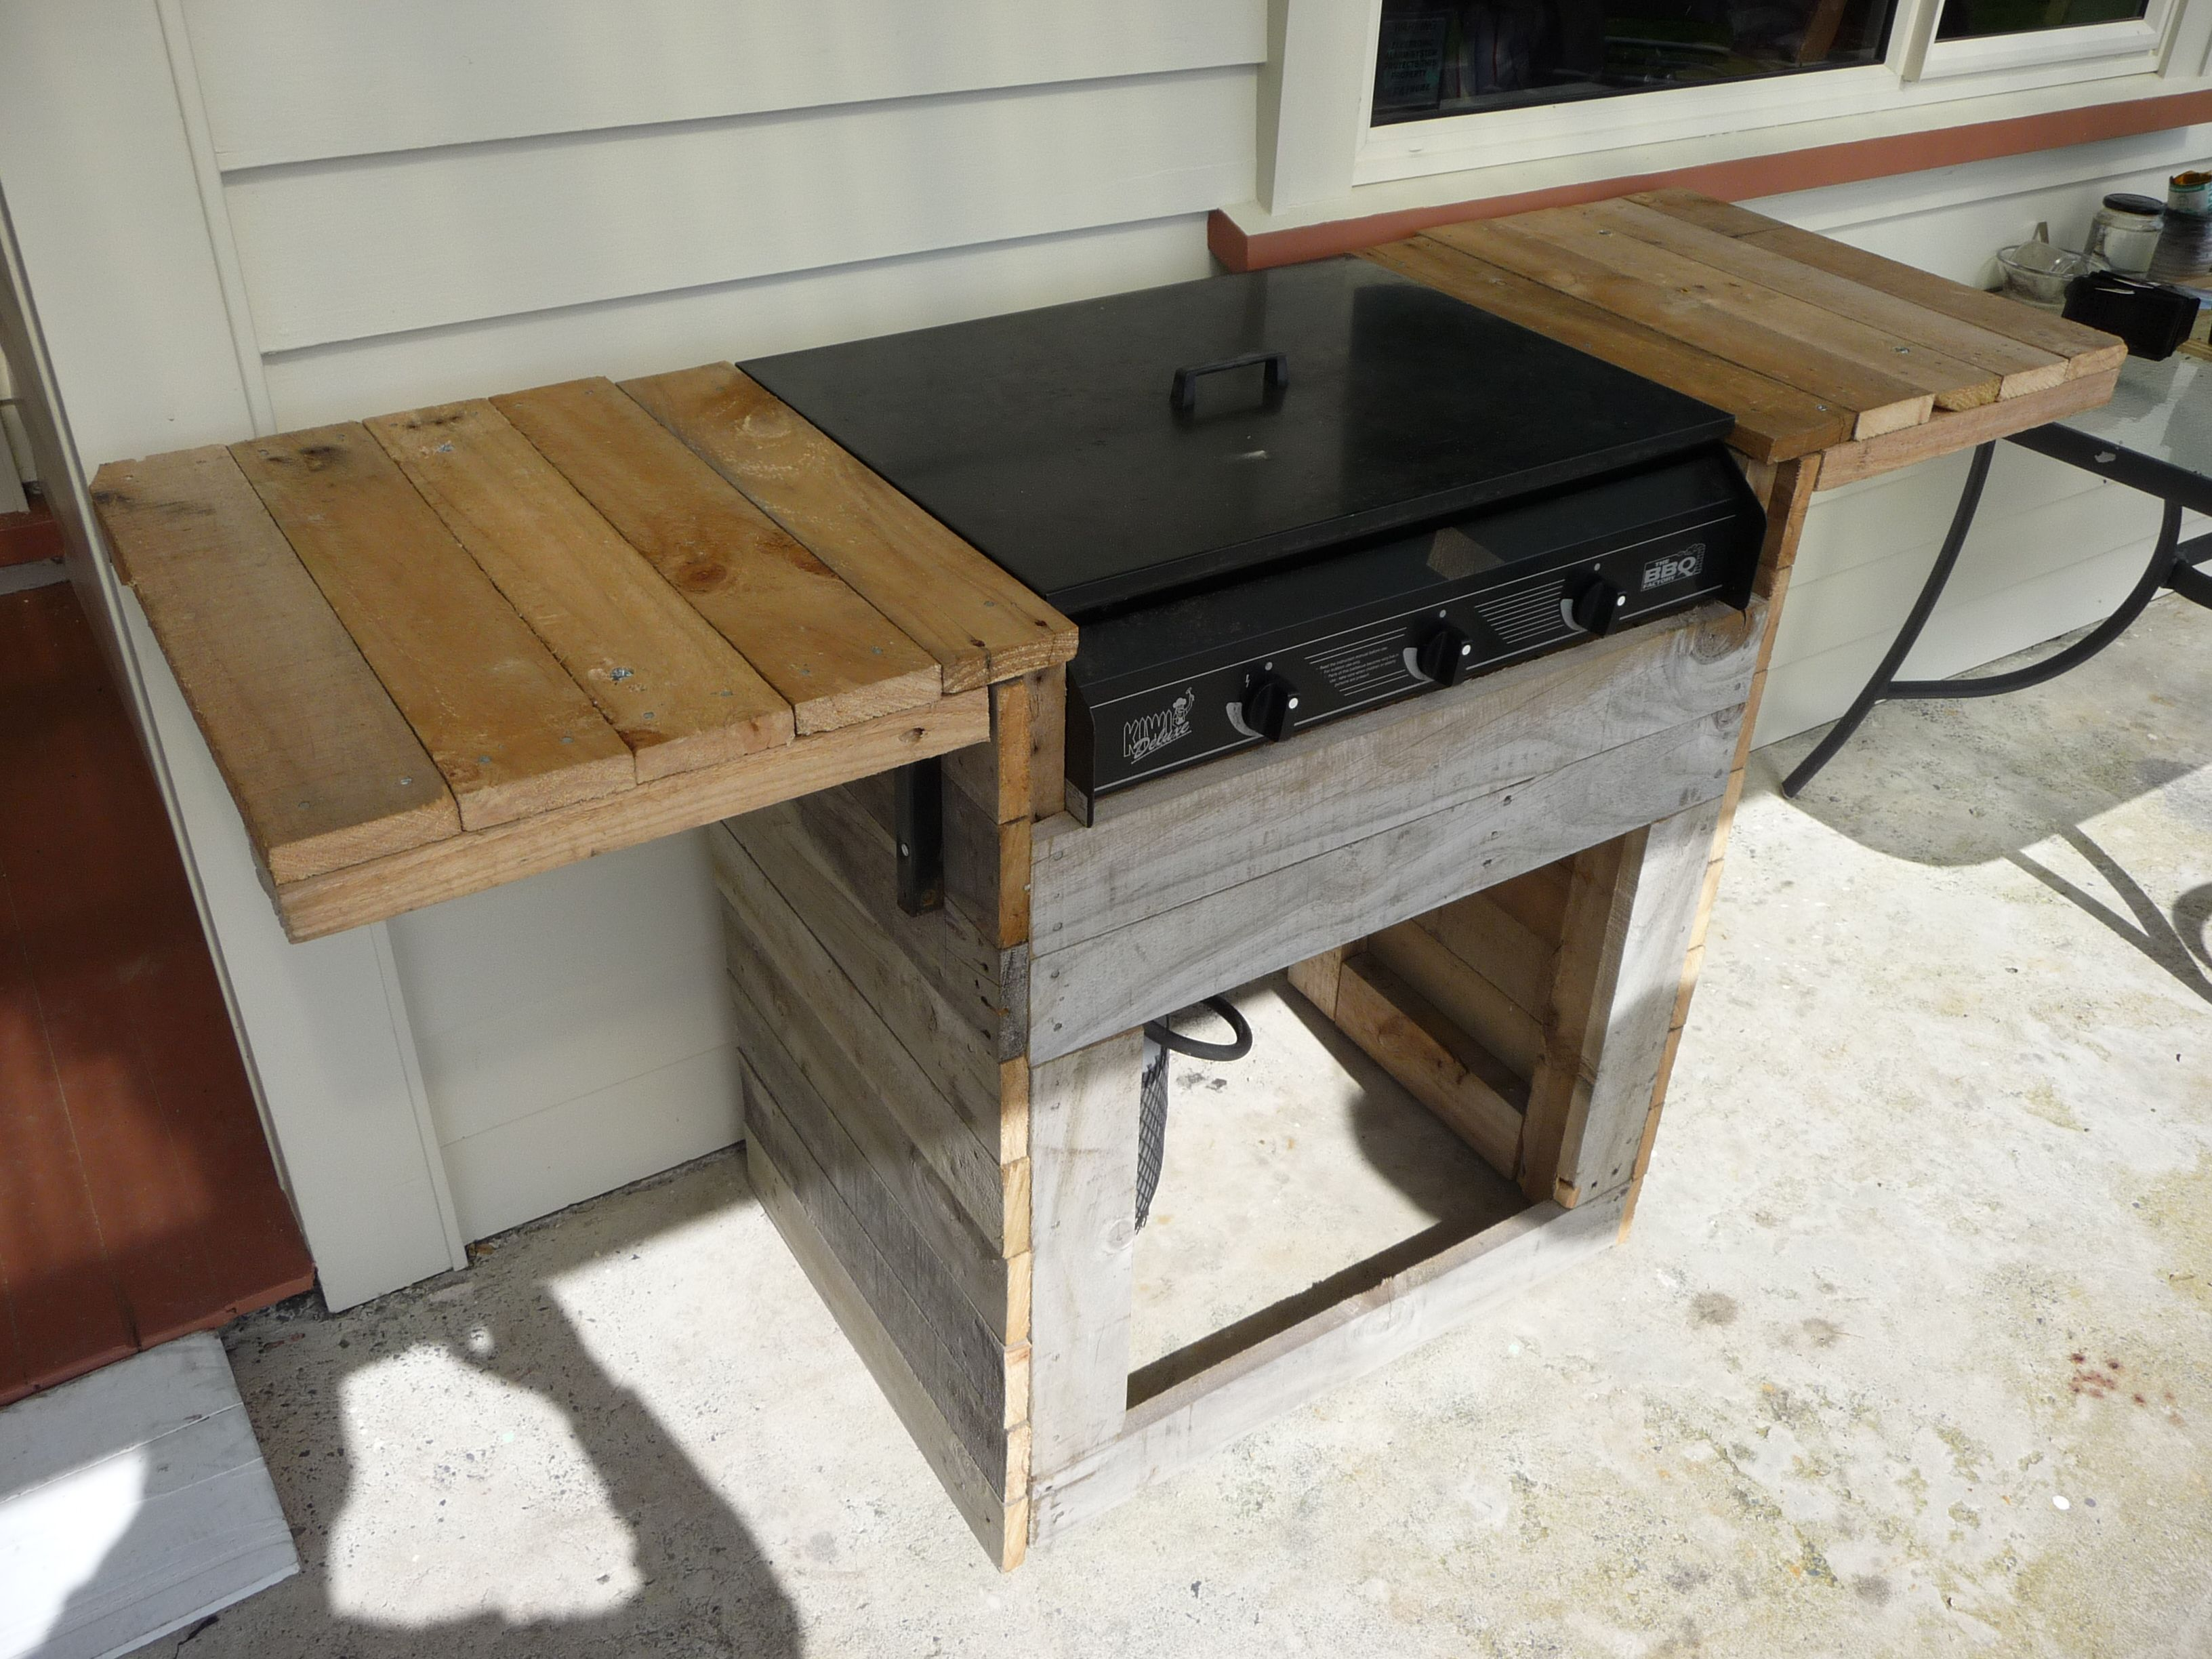 This is a BBQ stand I made out of old pallets that I collected. Diy ...